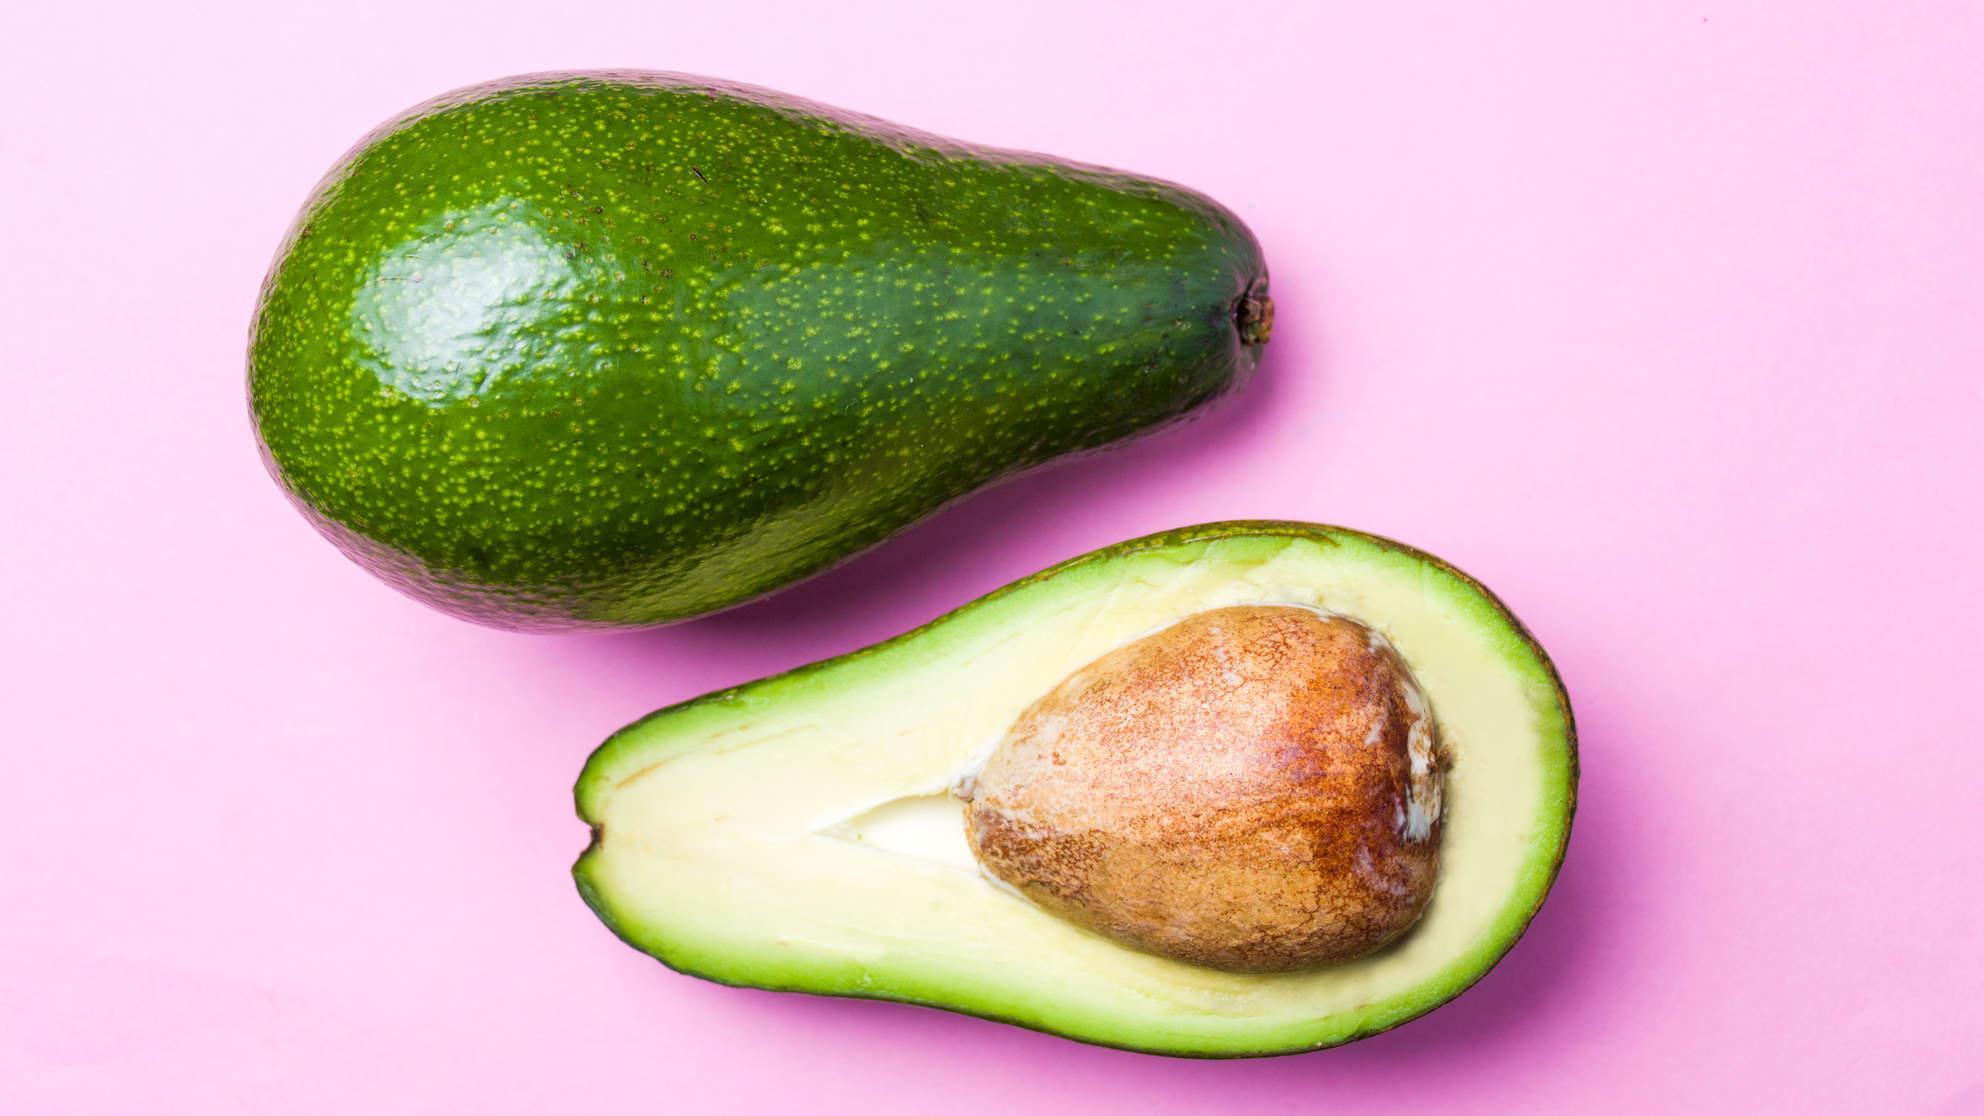 'Guacamole Cheese' Now Exists and It's Made with Real Avocados